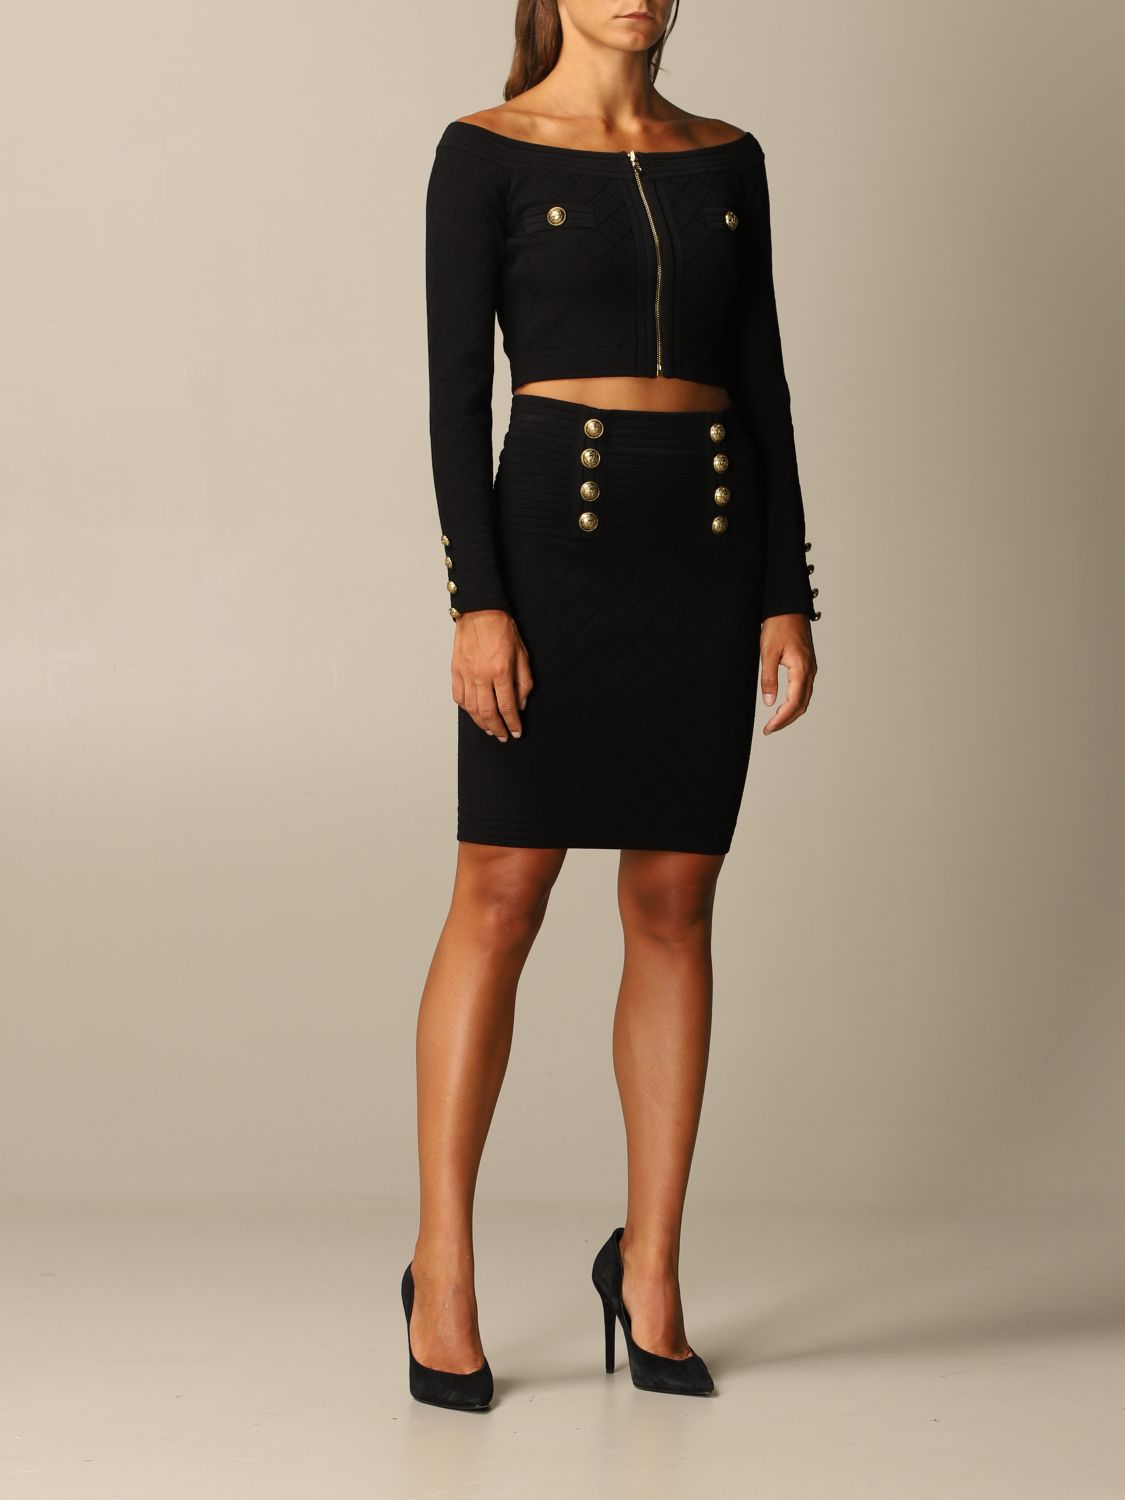 Skirt Balmain: Skirt women Balmain black 2